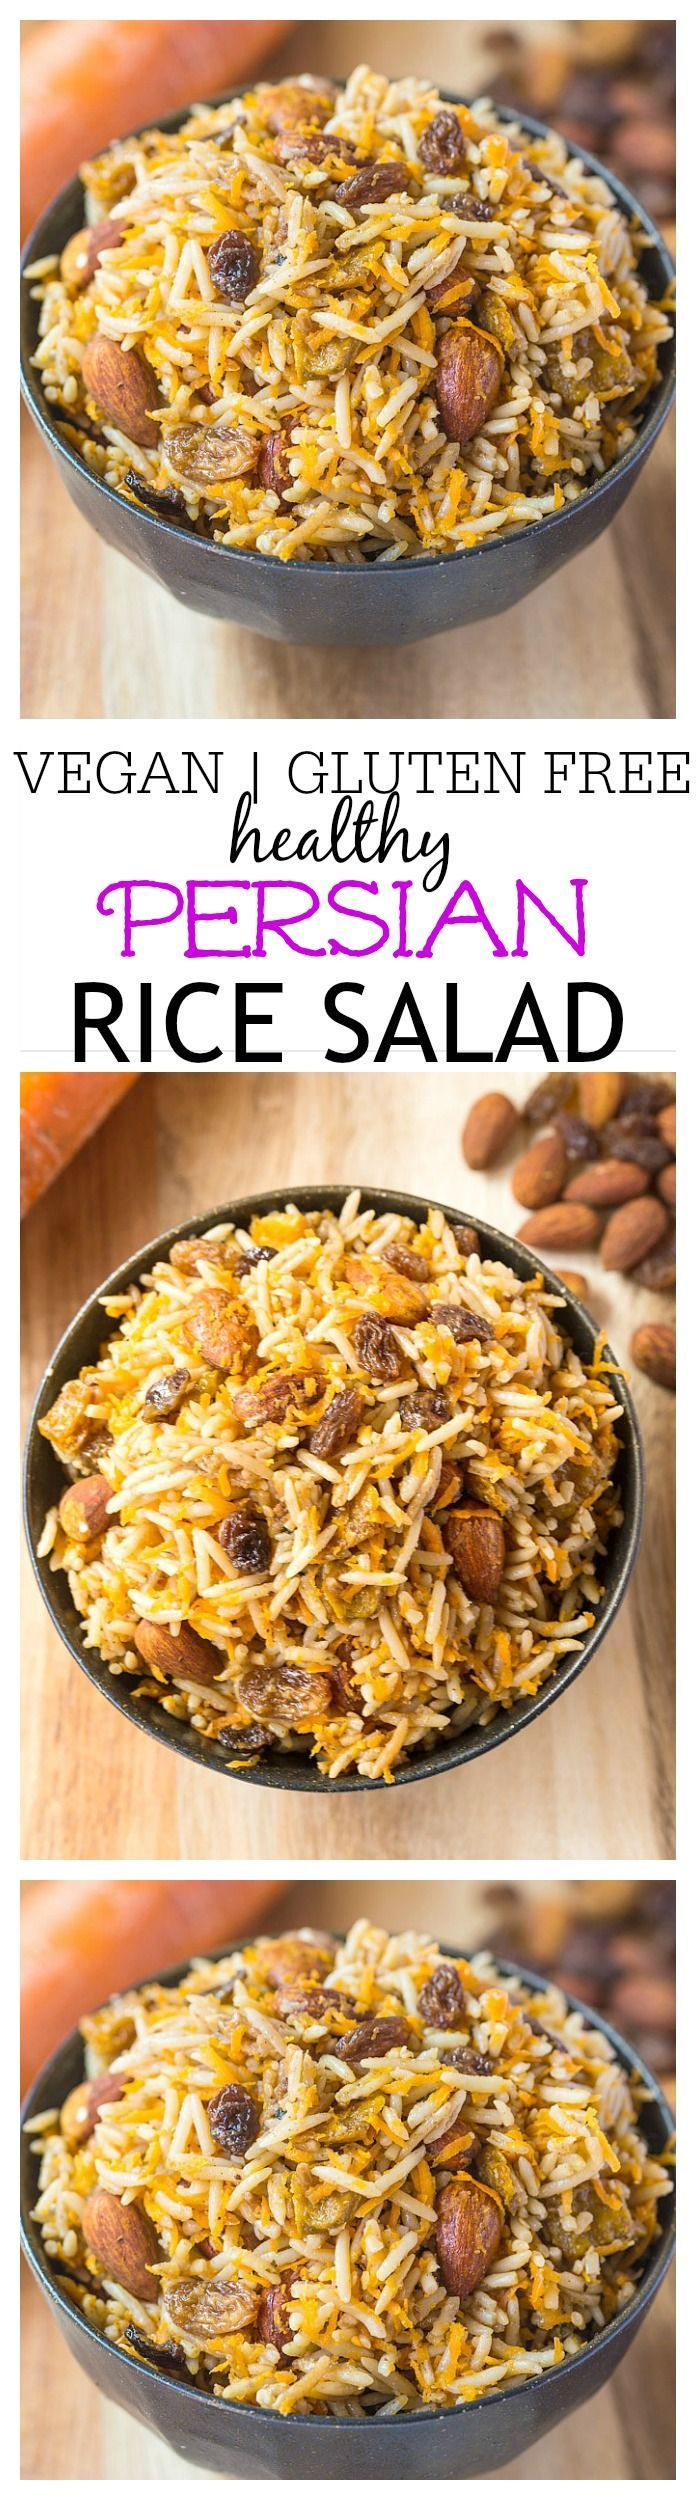 Vegan Persian Rice Salad- A delicious, Persian style sweet and savoury salad based off almonds, raisins and fragrant basmati rice. Perfect eaten hot or cold, this salad is vegan, gluten free, dairy free, light and fresh- Perfect for any meal, especially a mother's day brunch! @thebigmansworld -thebigmansworld.com